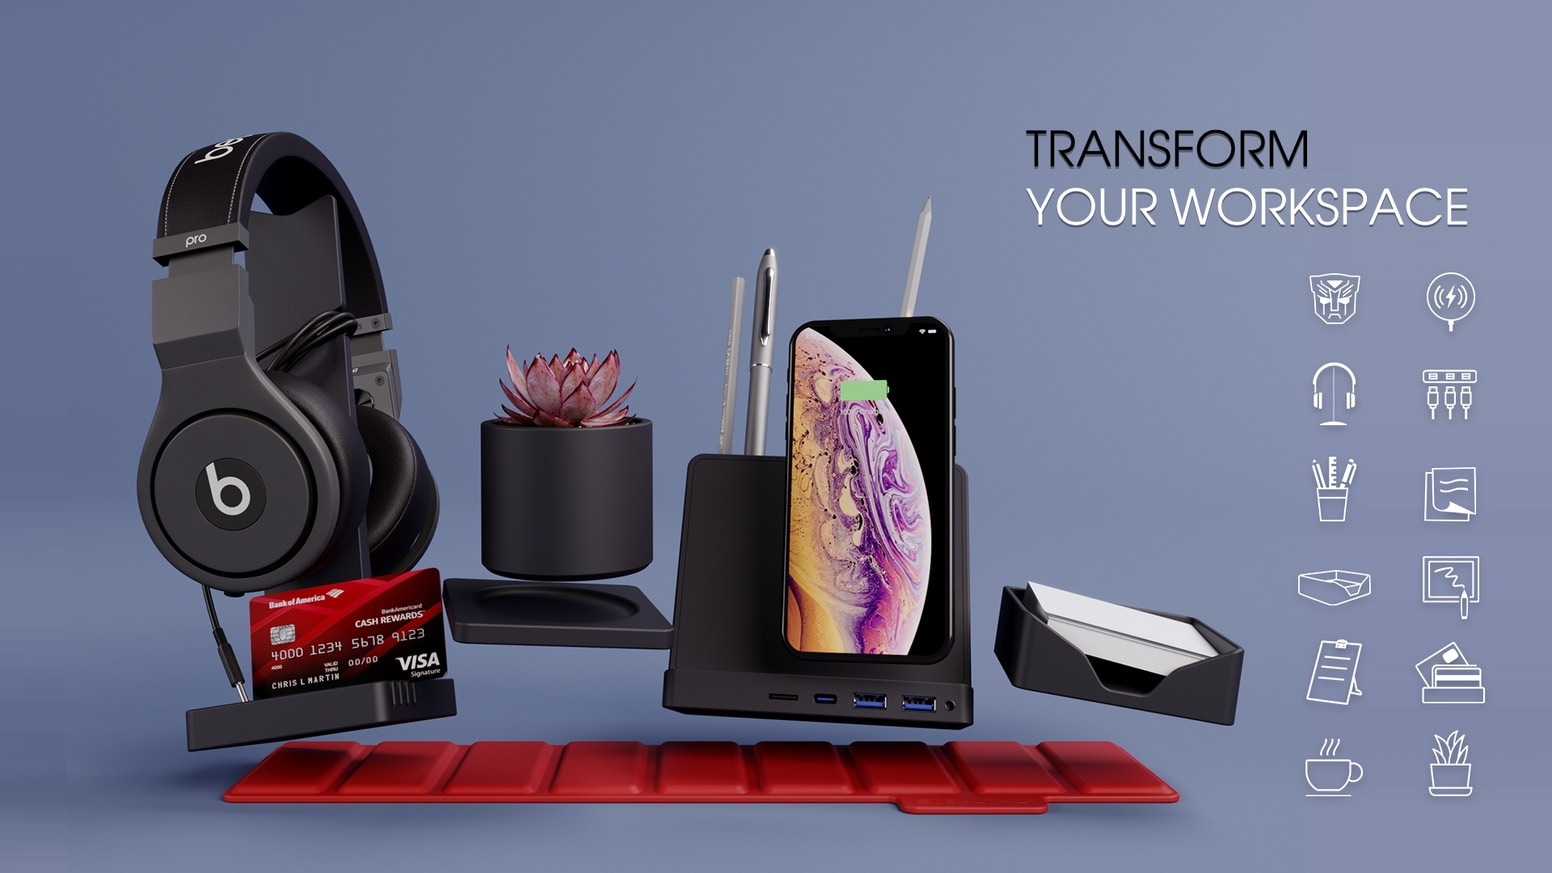 STEALTHO Office Storage Accessory includes- Pen & Phone & Post-it & Copy holder, Writing board, Headphone & Sticky notes stand, Coaster